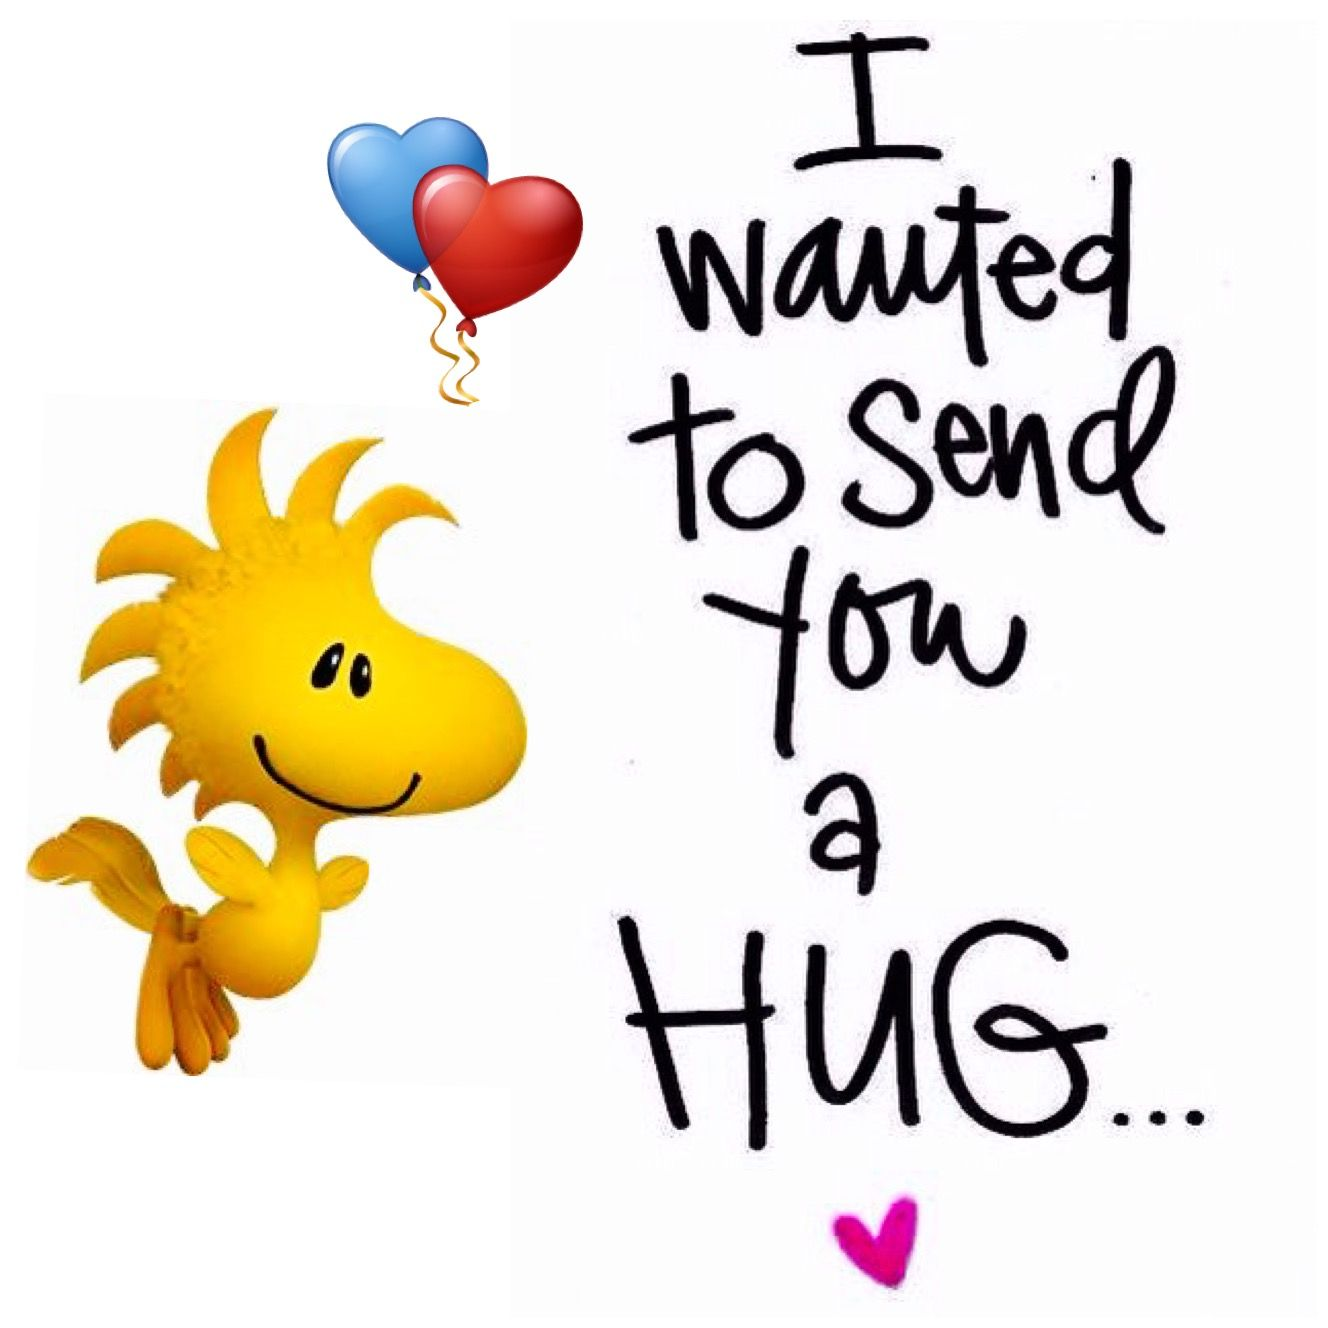 I wanted to send you a hug. Woodstock 3D with heart balloons.